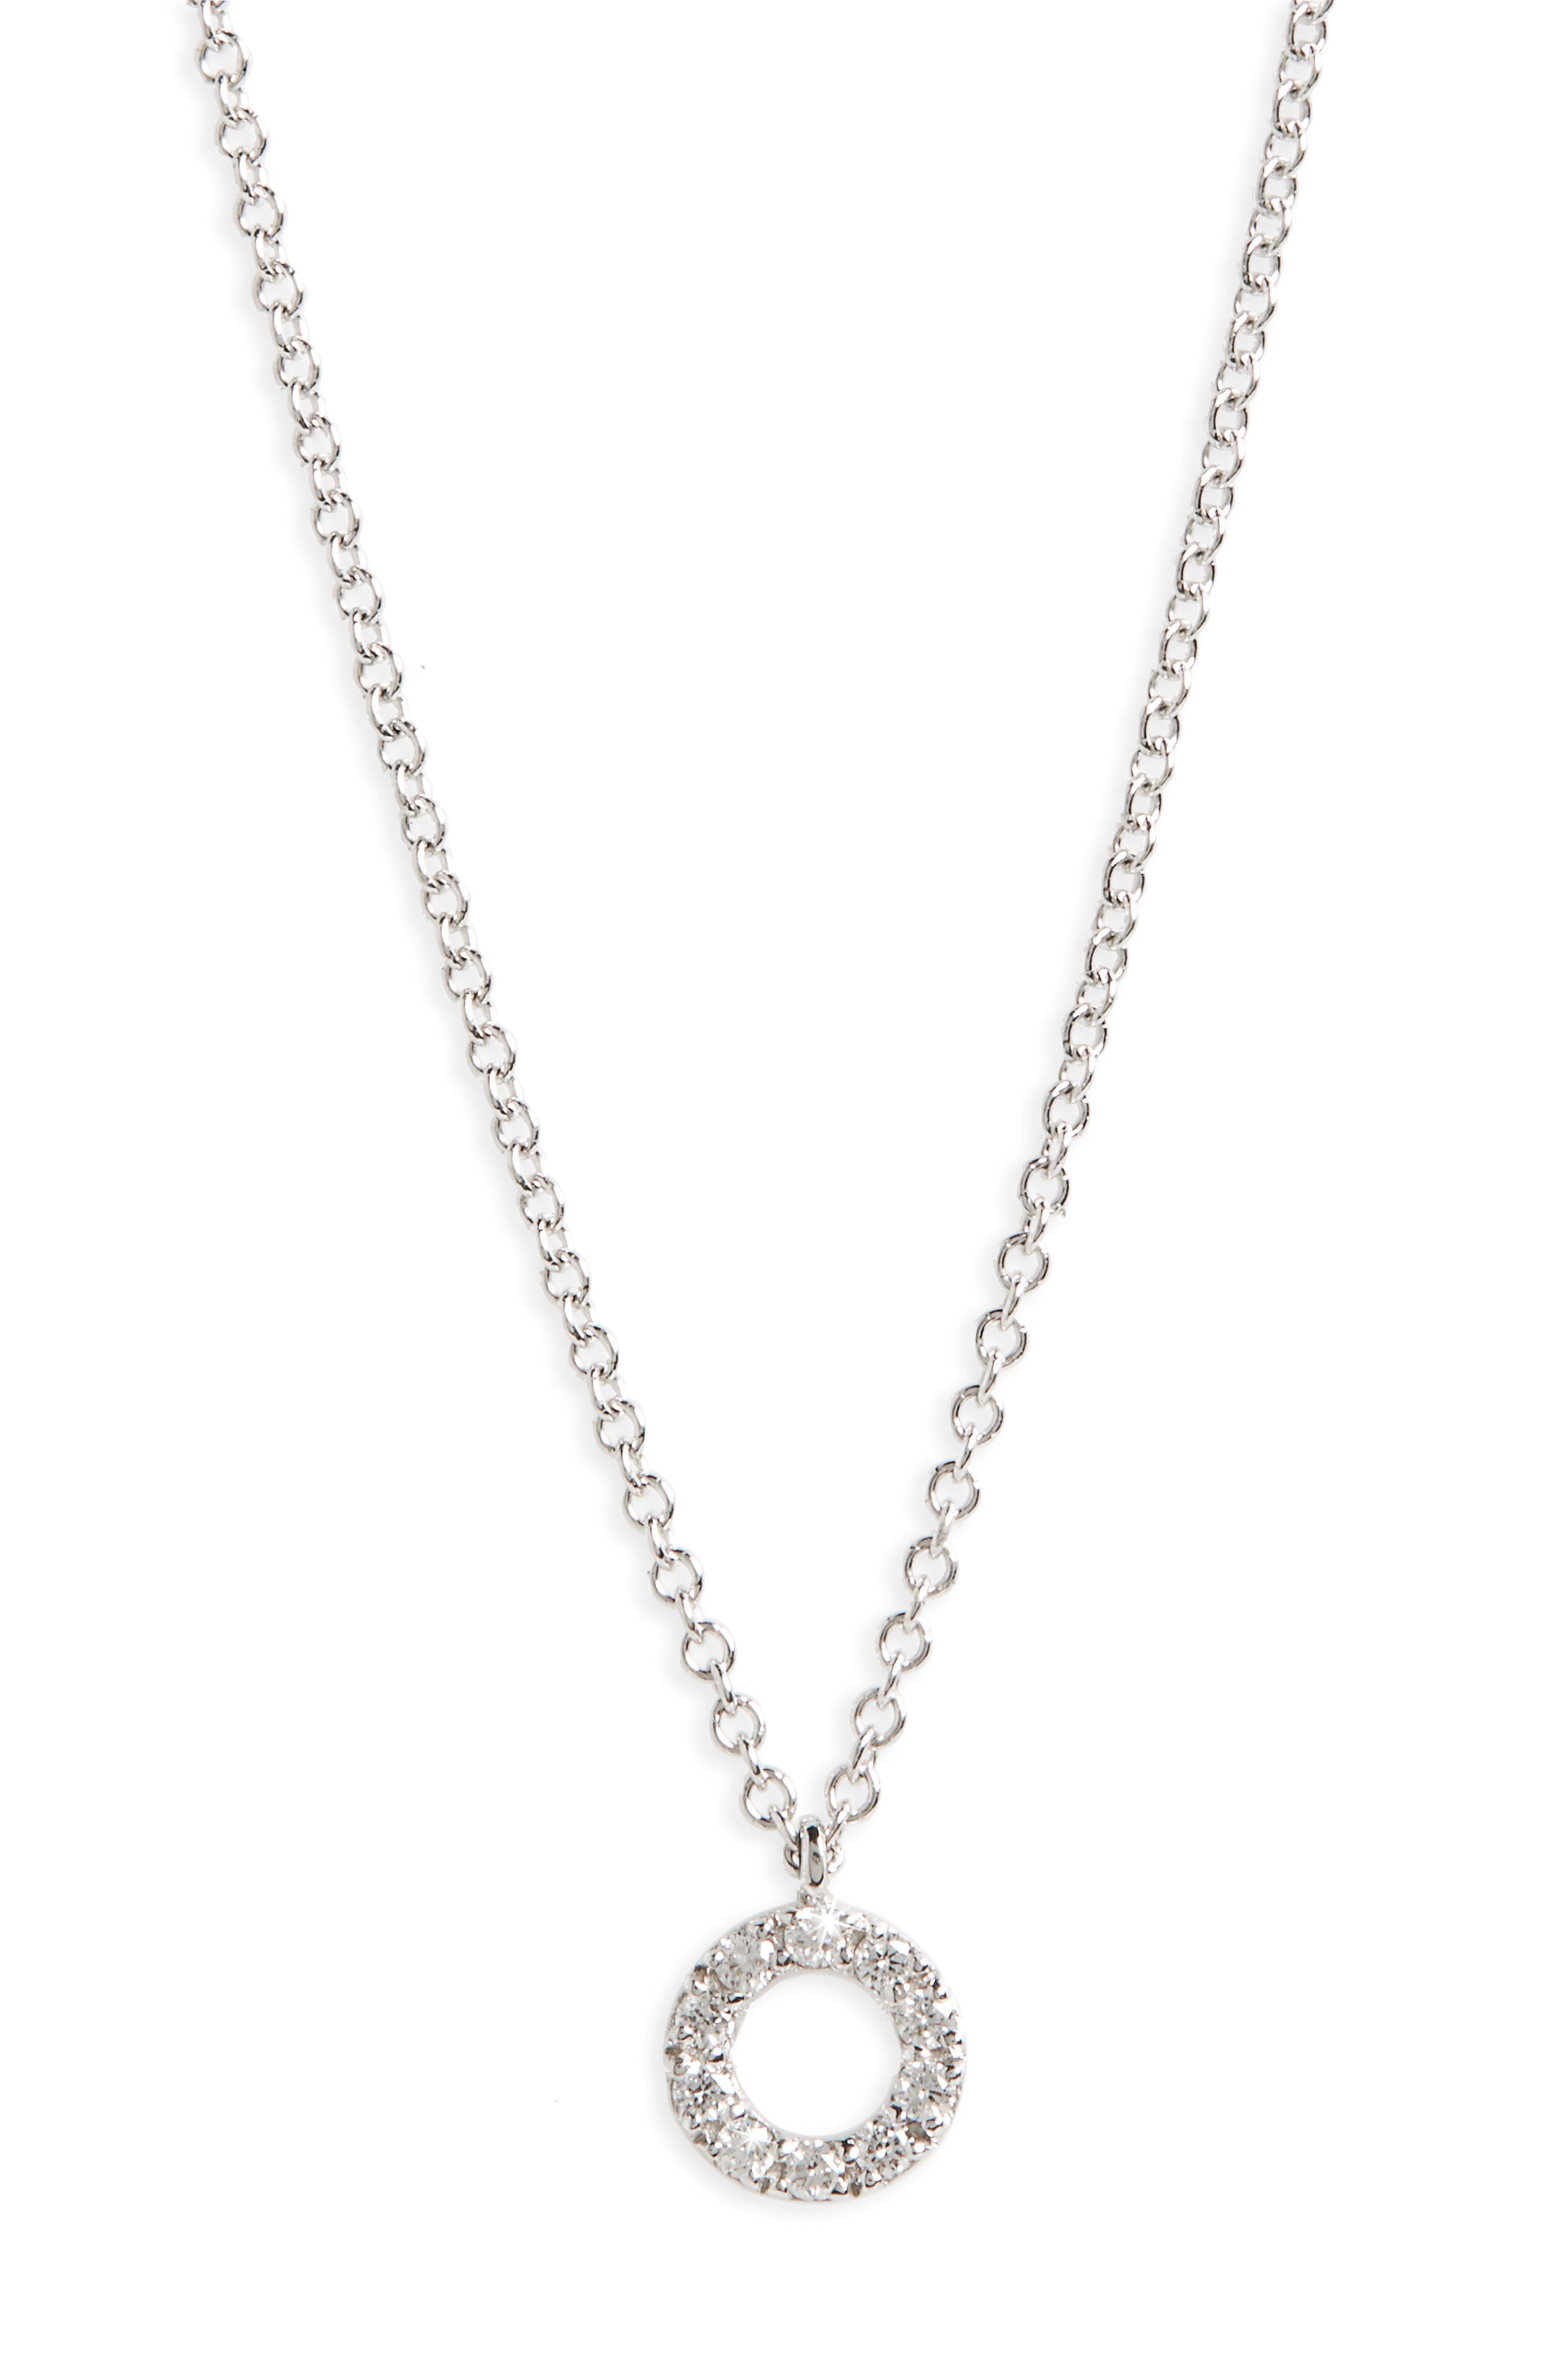 Simple Obsessions Diamond Pendant Necklace,                             Main thumbnail 1, color,                             WHITE GOLD